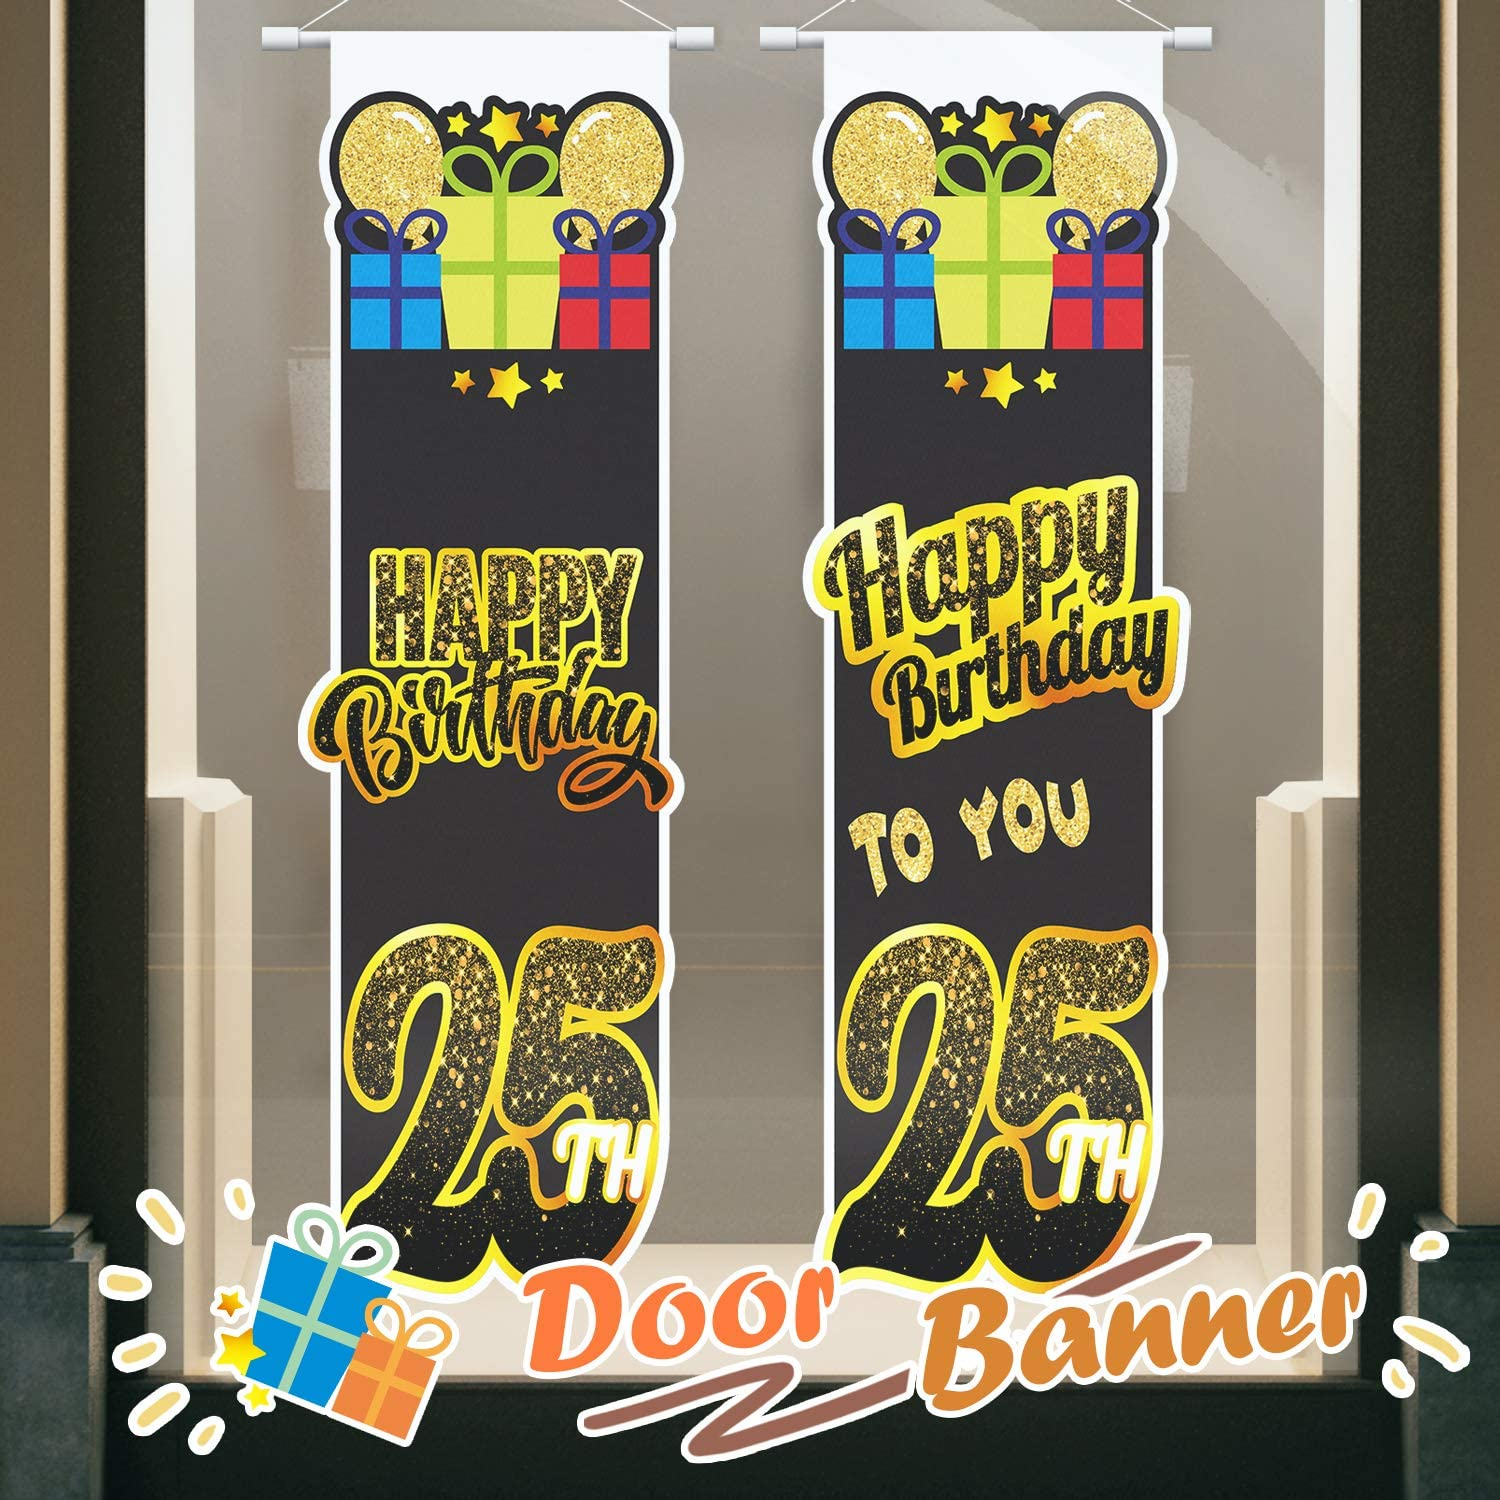 PAKBOOM Happy 25th Birthday Black Yard Sign Door Banner 25 Years Old Decorations Party Supplies for Men Women